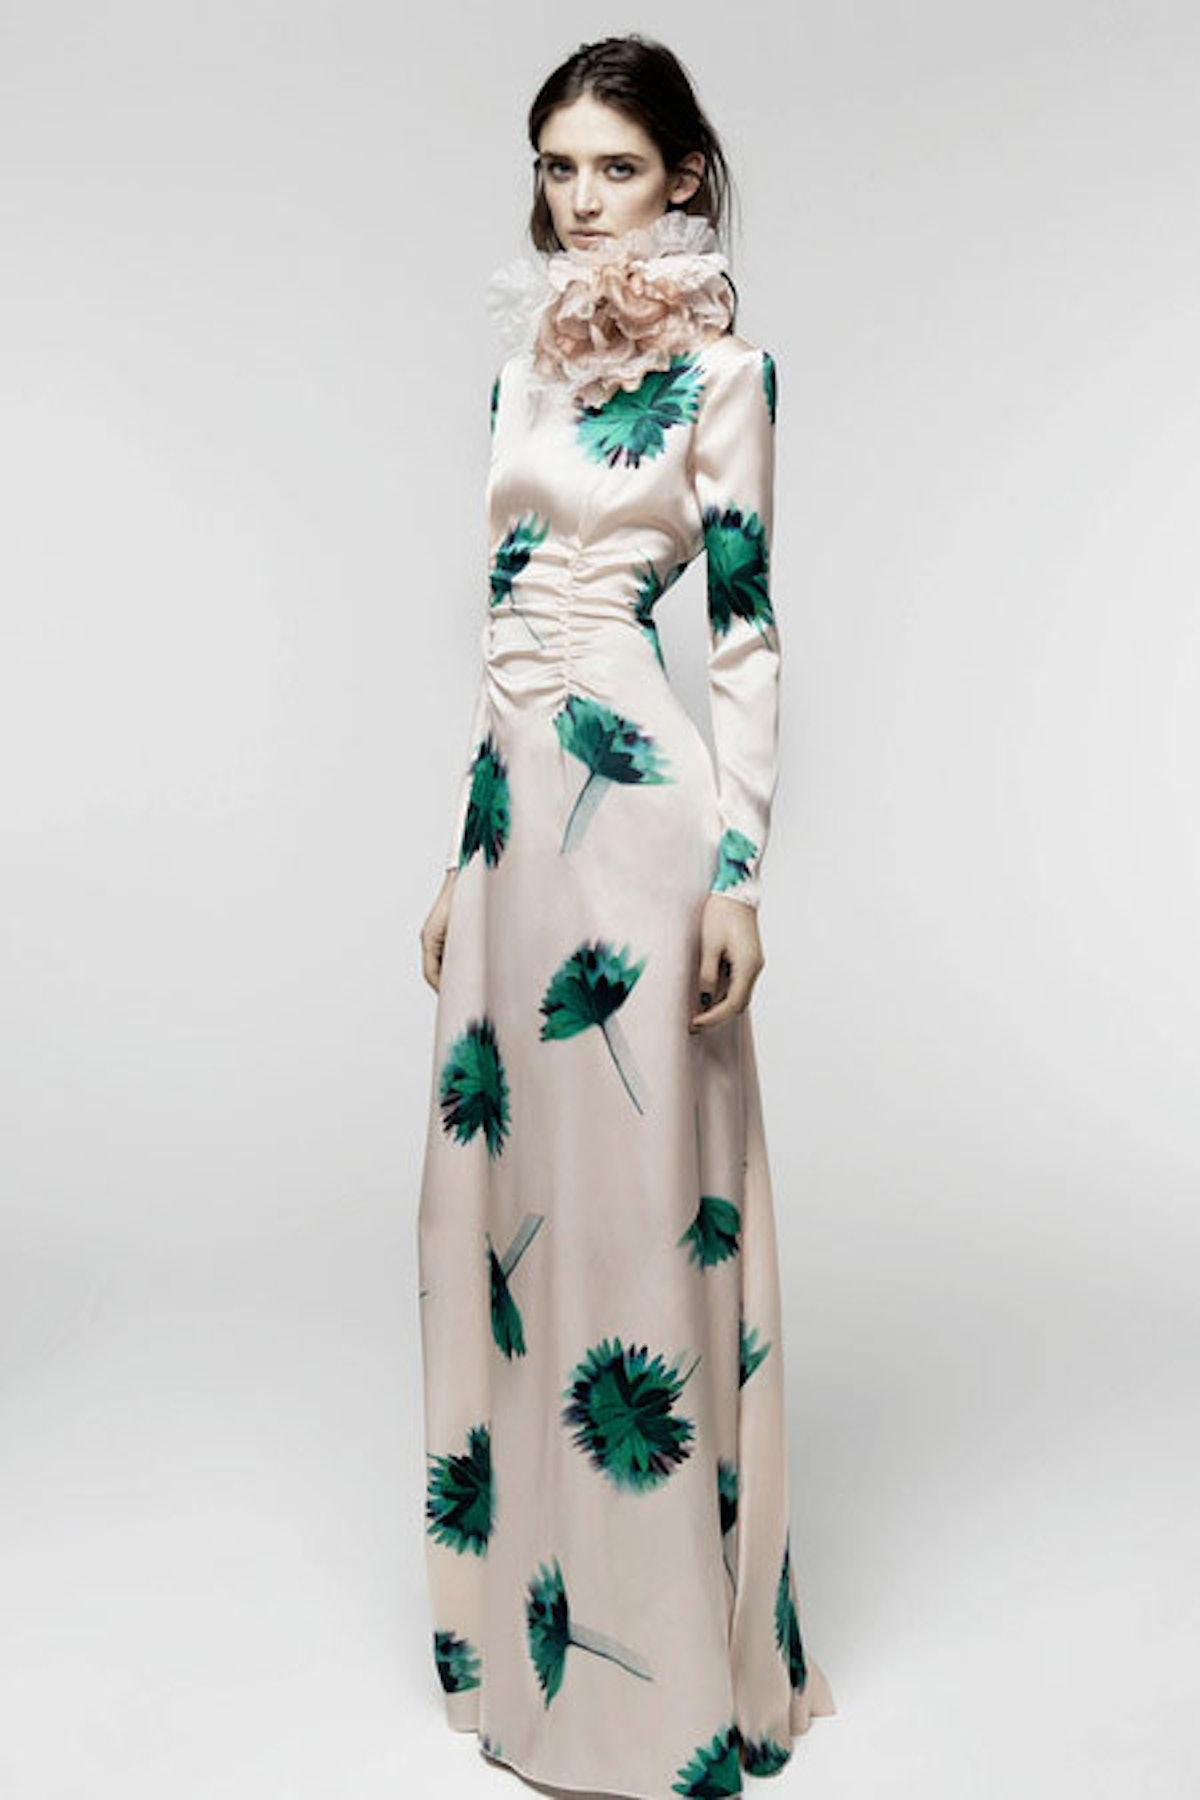 __[Nina Ricci](http://www.wmagazine.com/mood-board/filter?q=^Designer|Nina%20Ricci|):__ I think more people should wear both long sleeves and prints on the red carpet; this gown feels so new and different compared to the mermaid numbers we're used to seeing.      Photo courtesy of the designer.